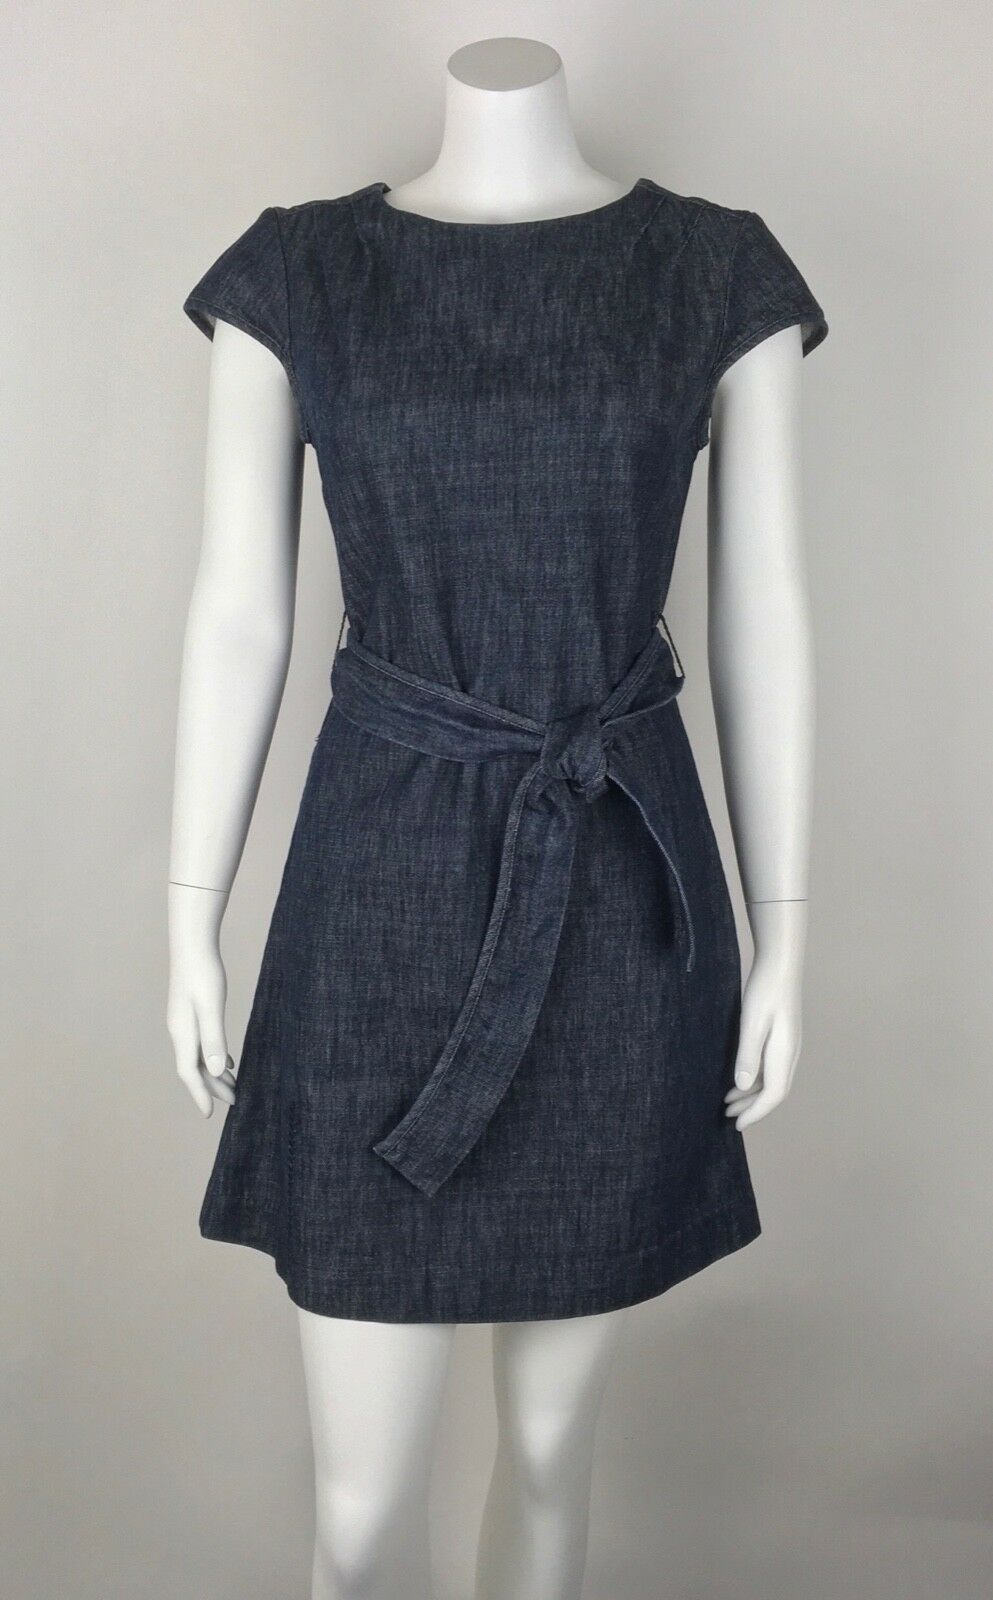 Orla Kiely Women's Dress Belted Sz 2 Cap Sleeve Work Career Denim Look Cotton